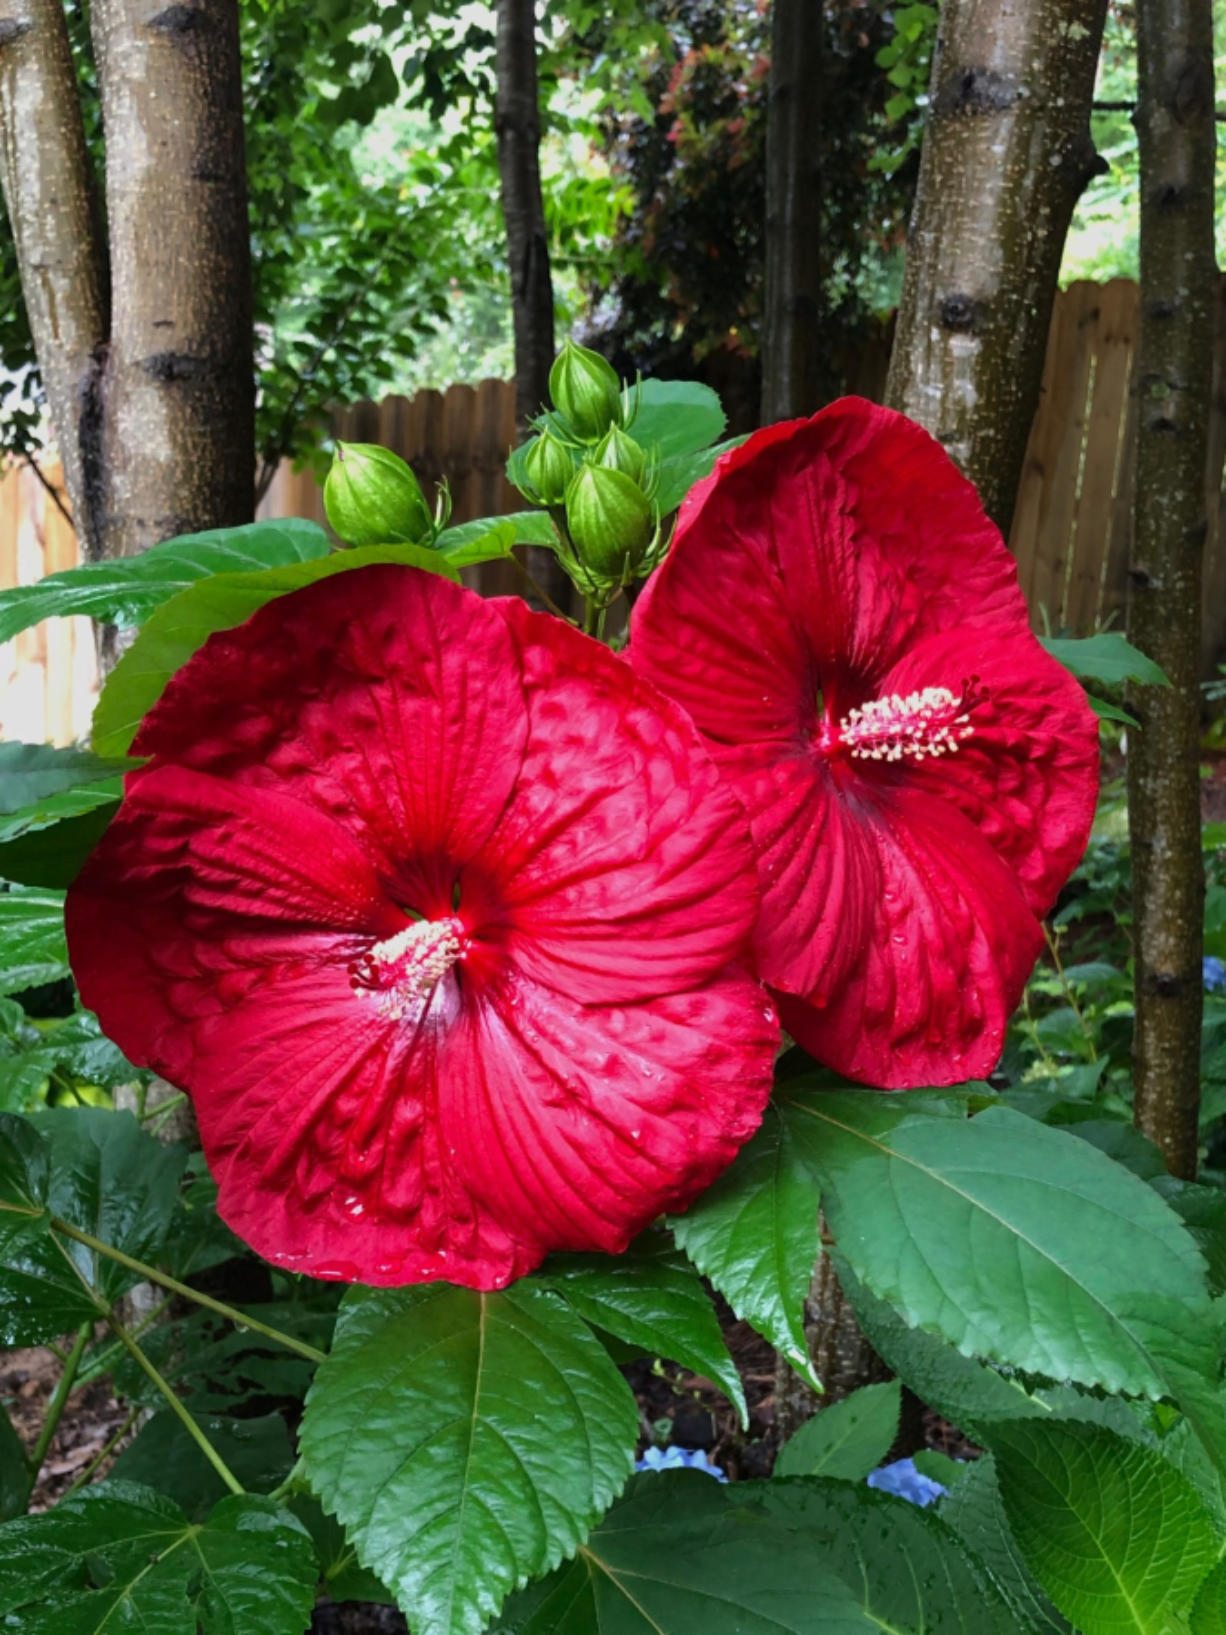 The Summerfic Holy Grail photographed in June shows the tropical looking feel of the large deep red flowers.